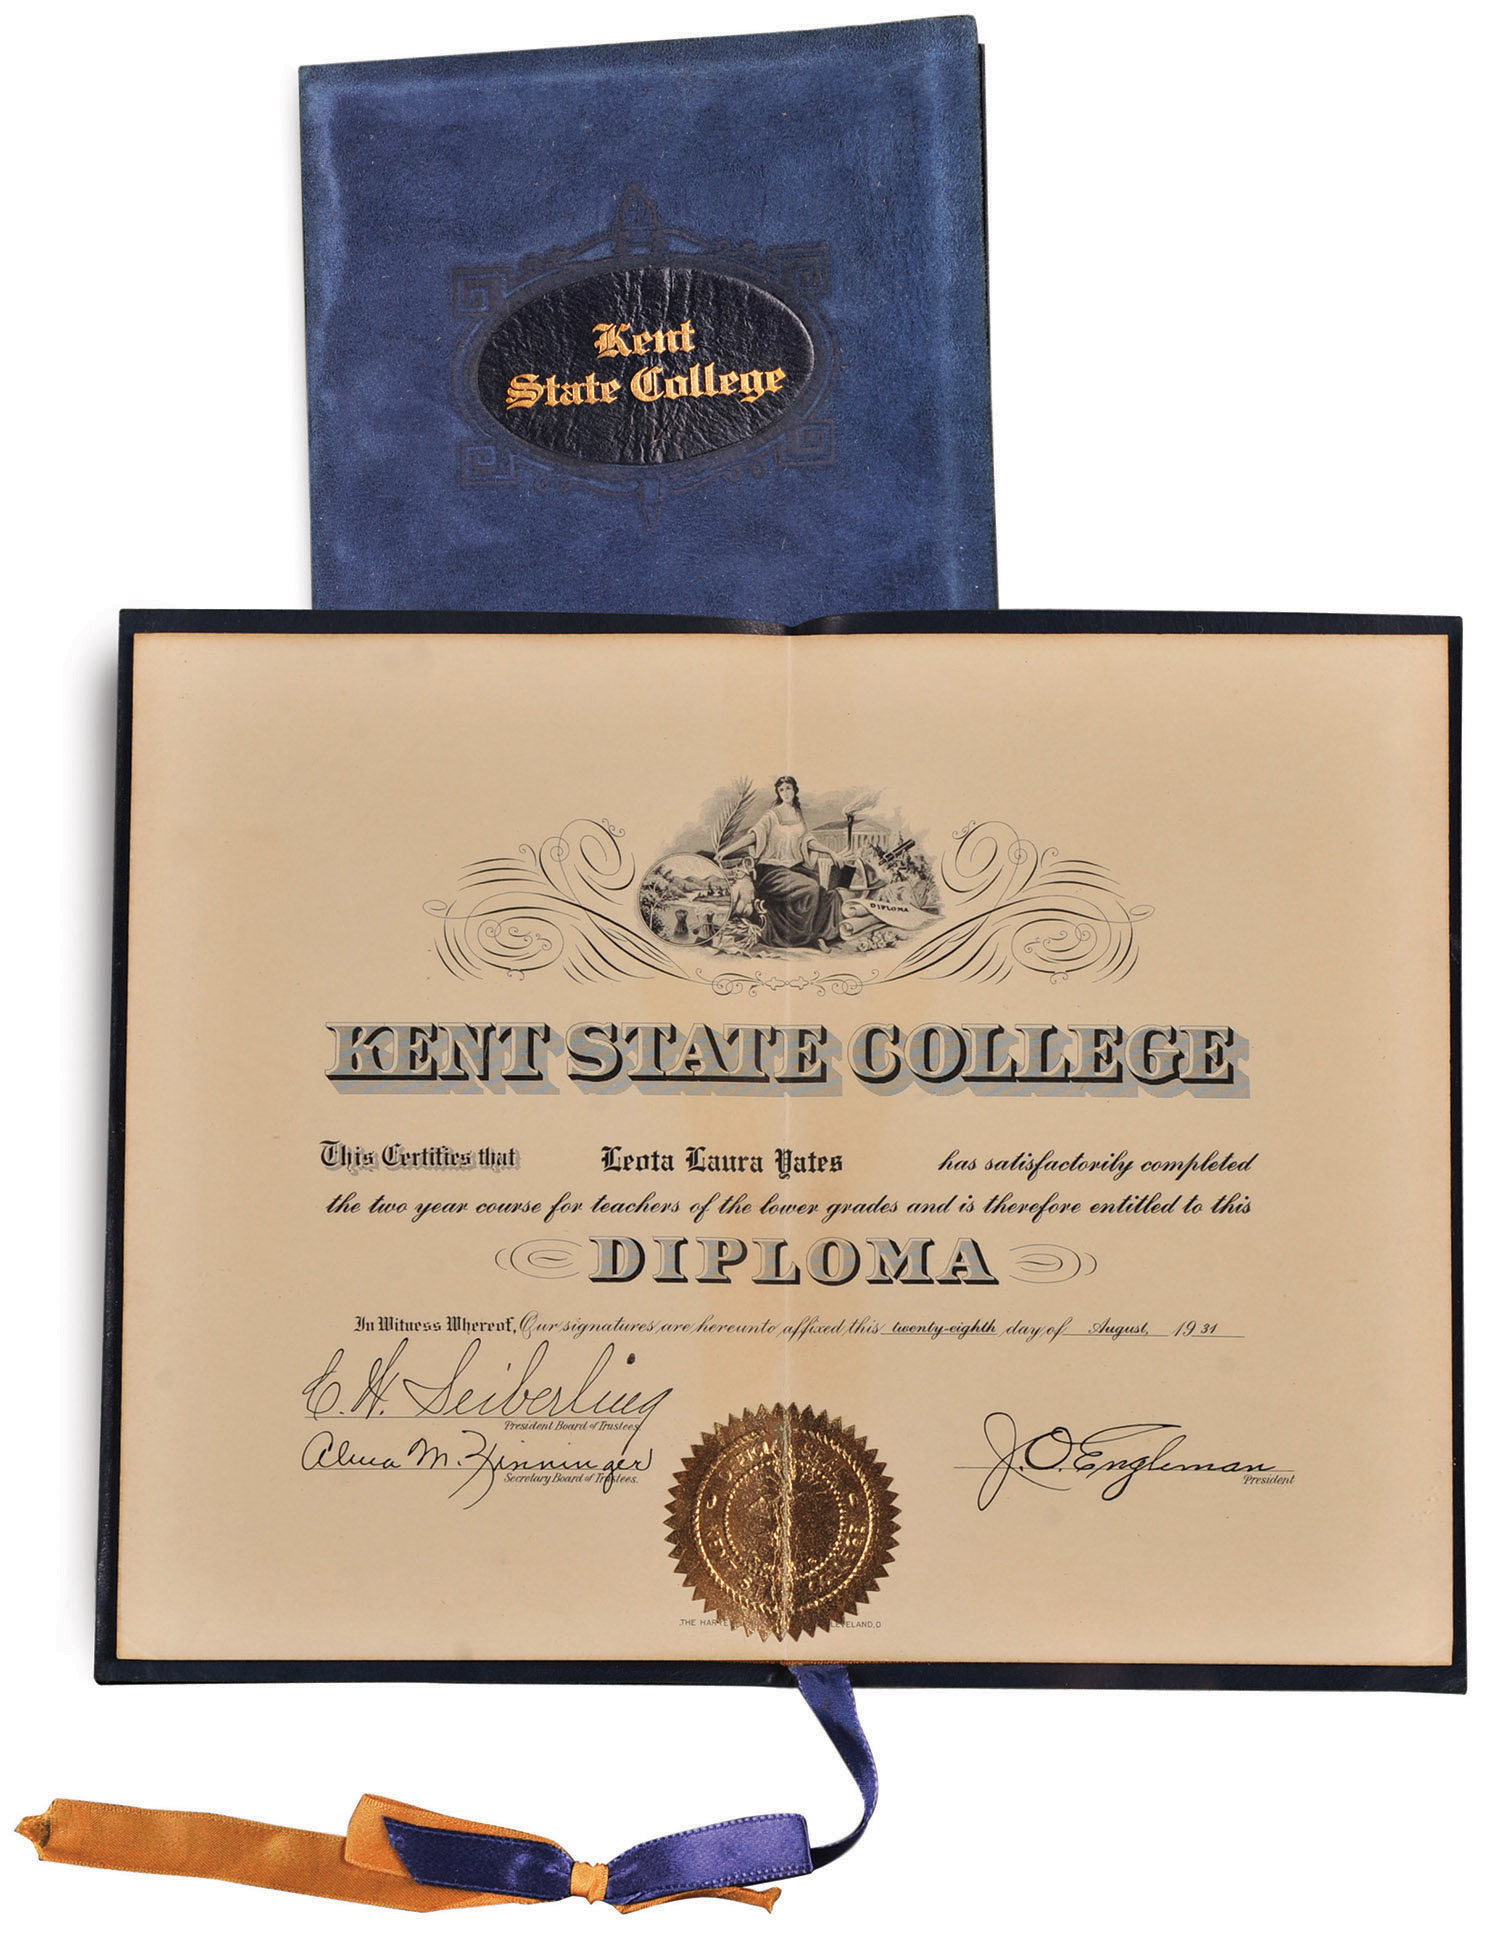 1934 diploma from Kent State College